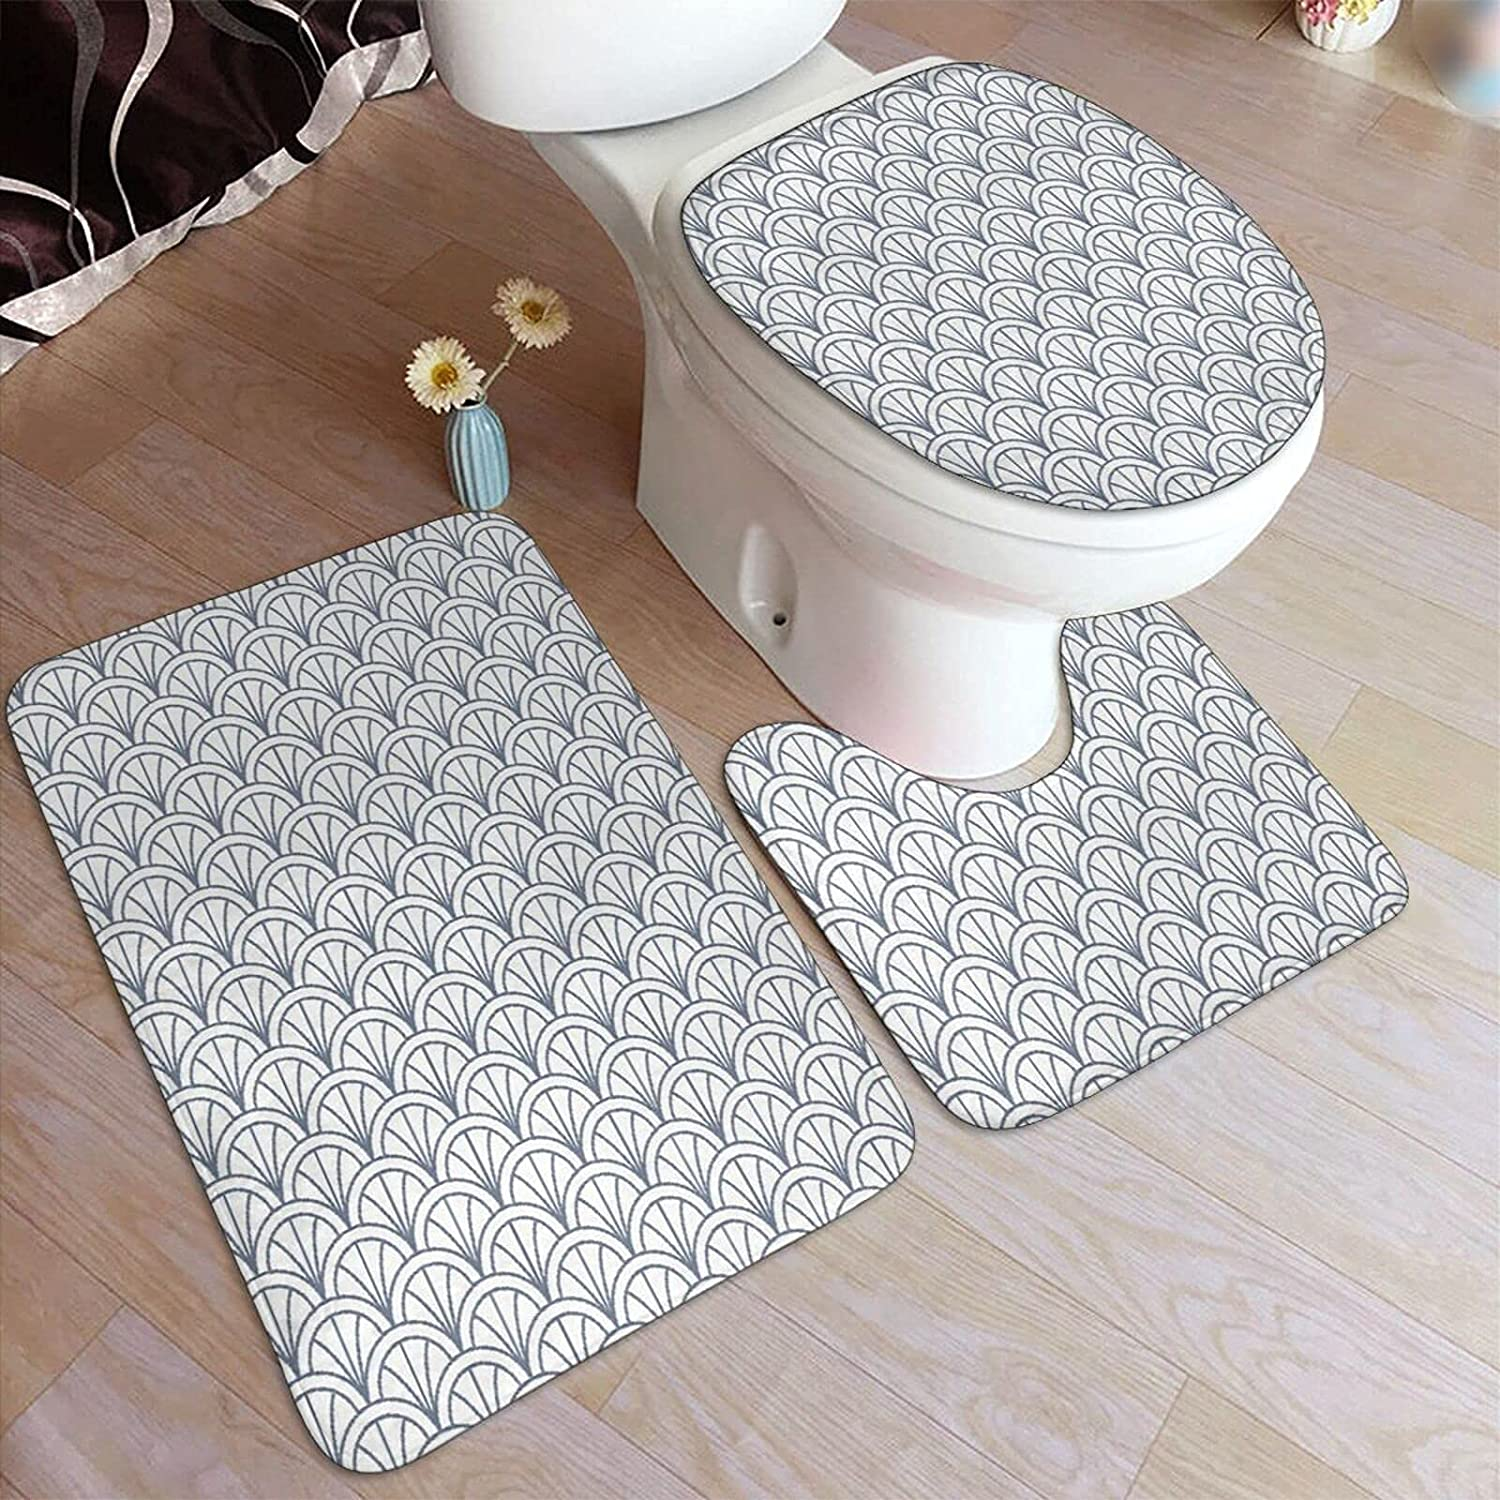 3 Piece Bathroom Rugs Set Limited Special Price Overlapping Seigaiha Pattern Geometric Detroit Mall